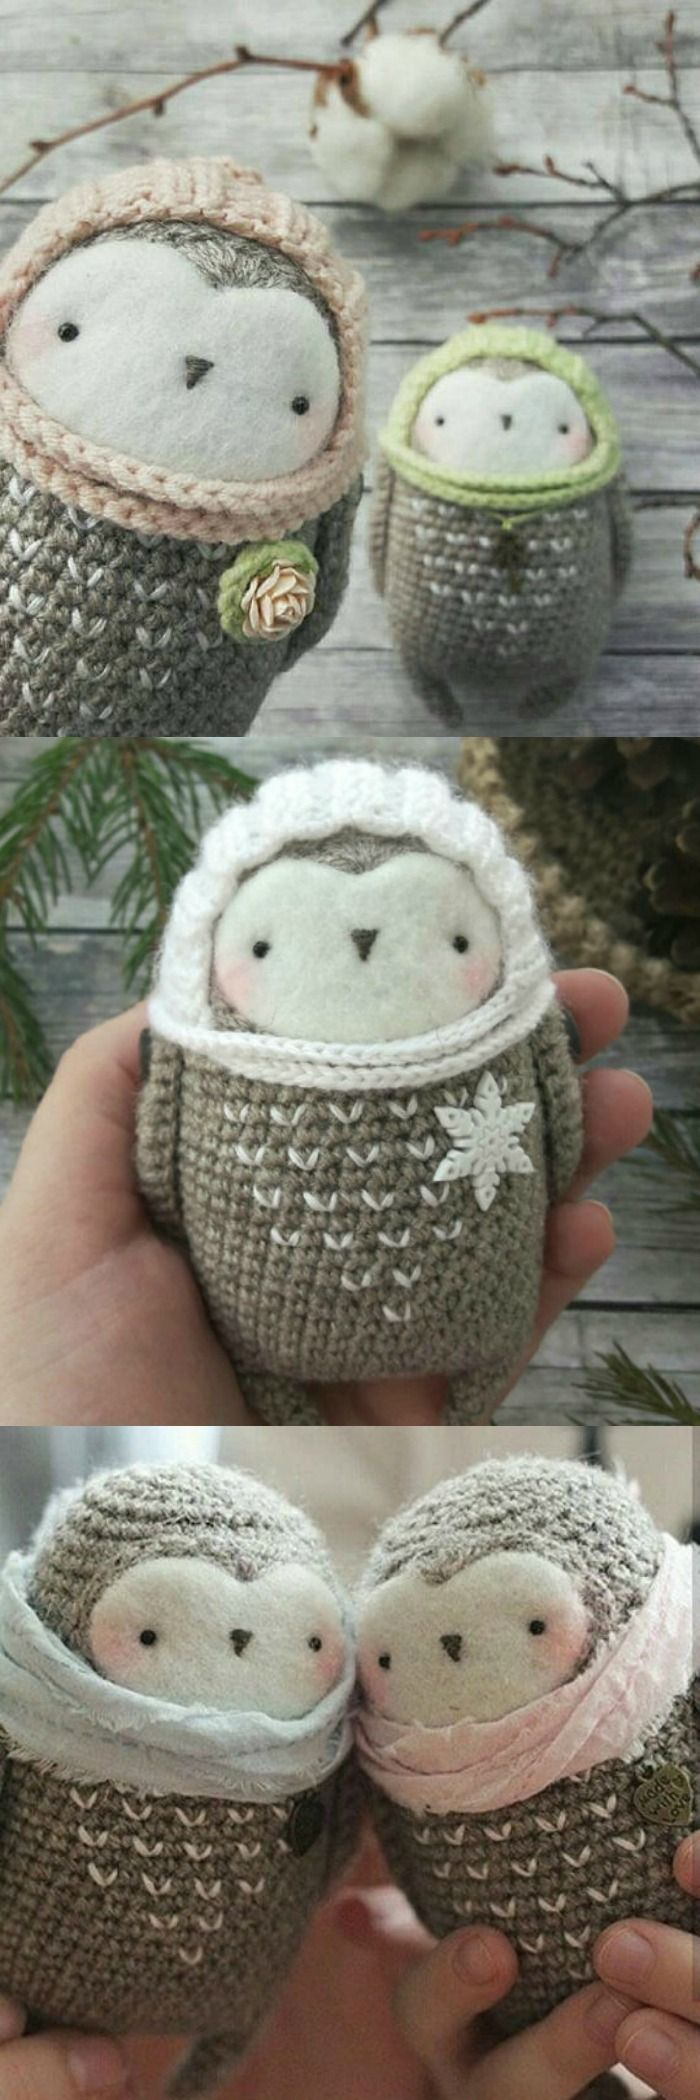 Super sweet and simple owl crochet pattern to download. Looks quick and easy. Love the details! #etsy #ad #amigurumi #owl #crochet #pattern #pdf #winter #toy #stuffy